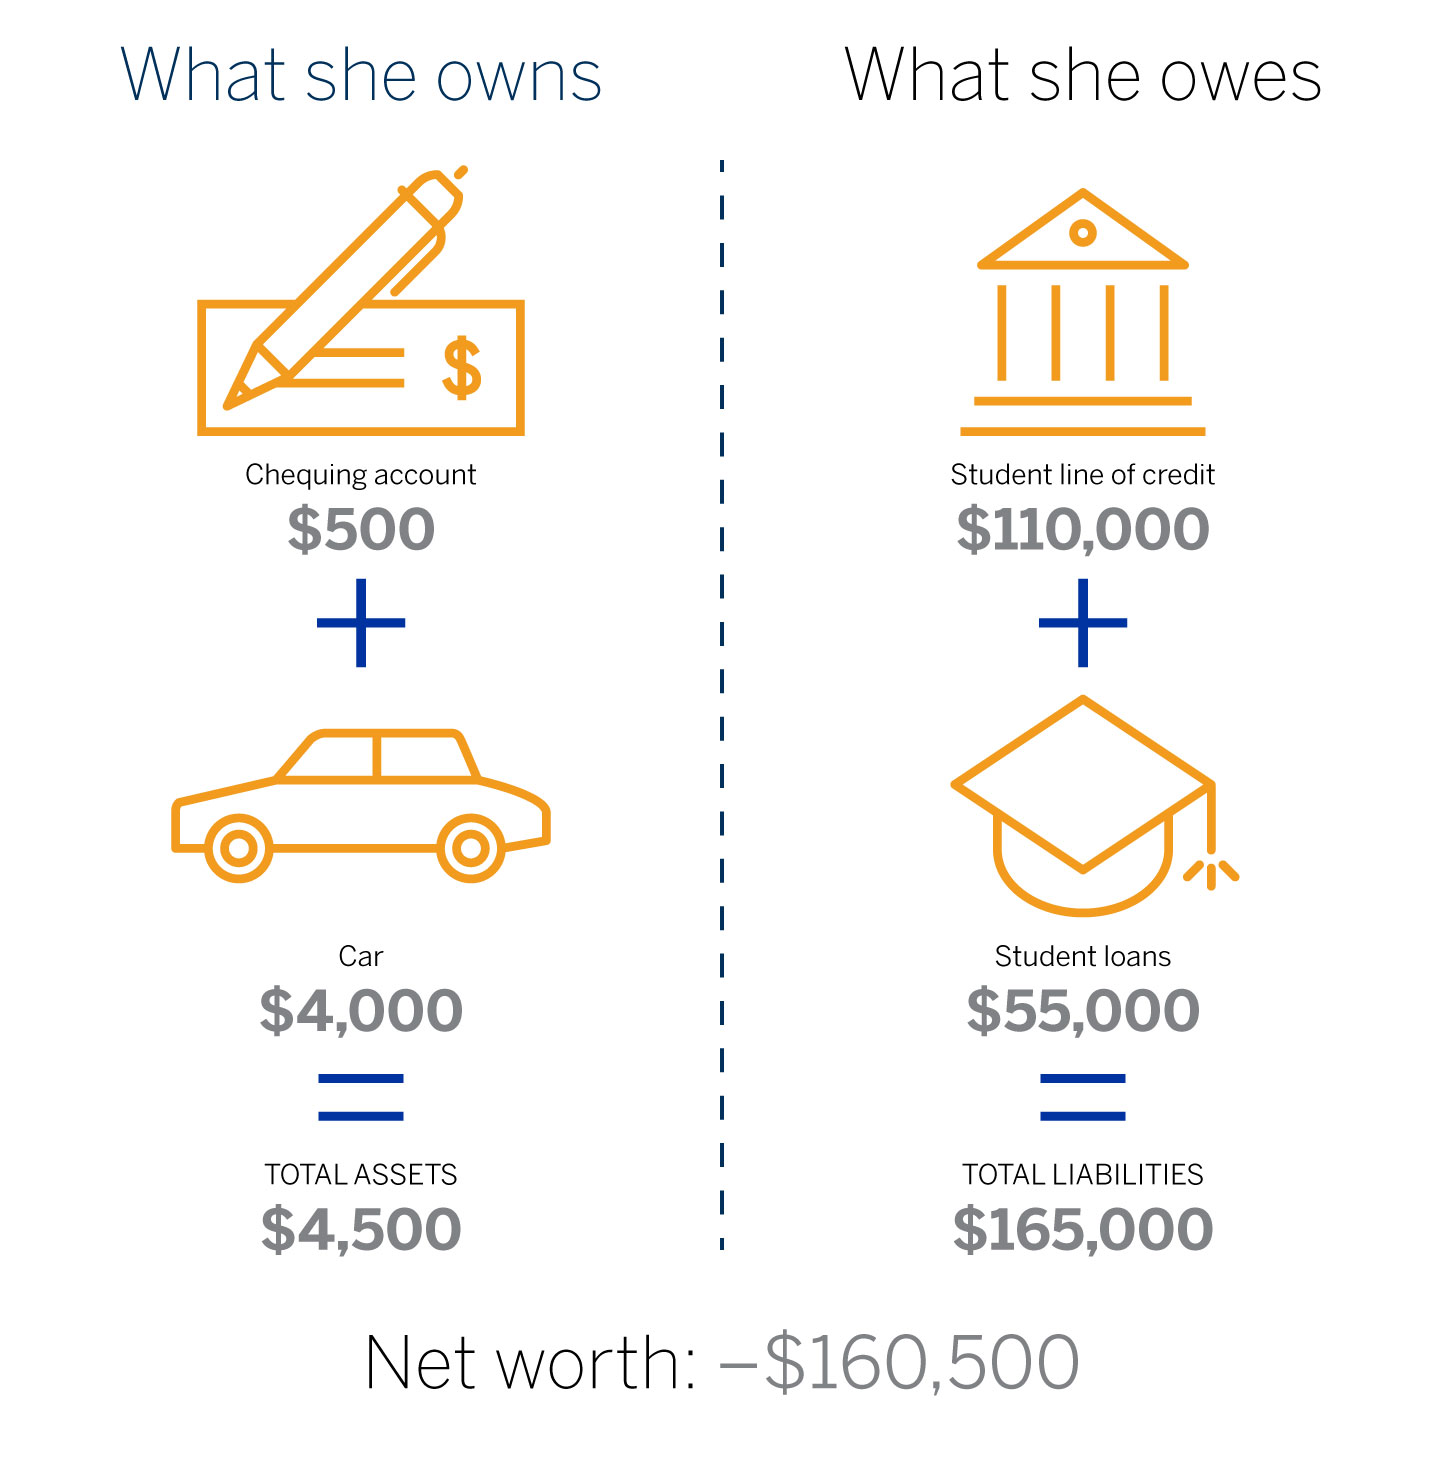 A side-by-side example of assets (chequing account, car) and liabilities (student line of credit, student loans), followed by net worth.